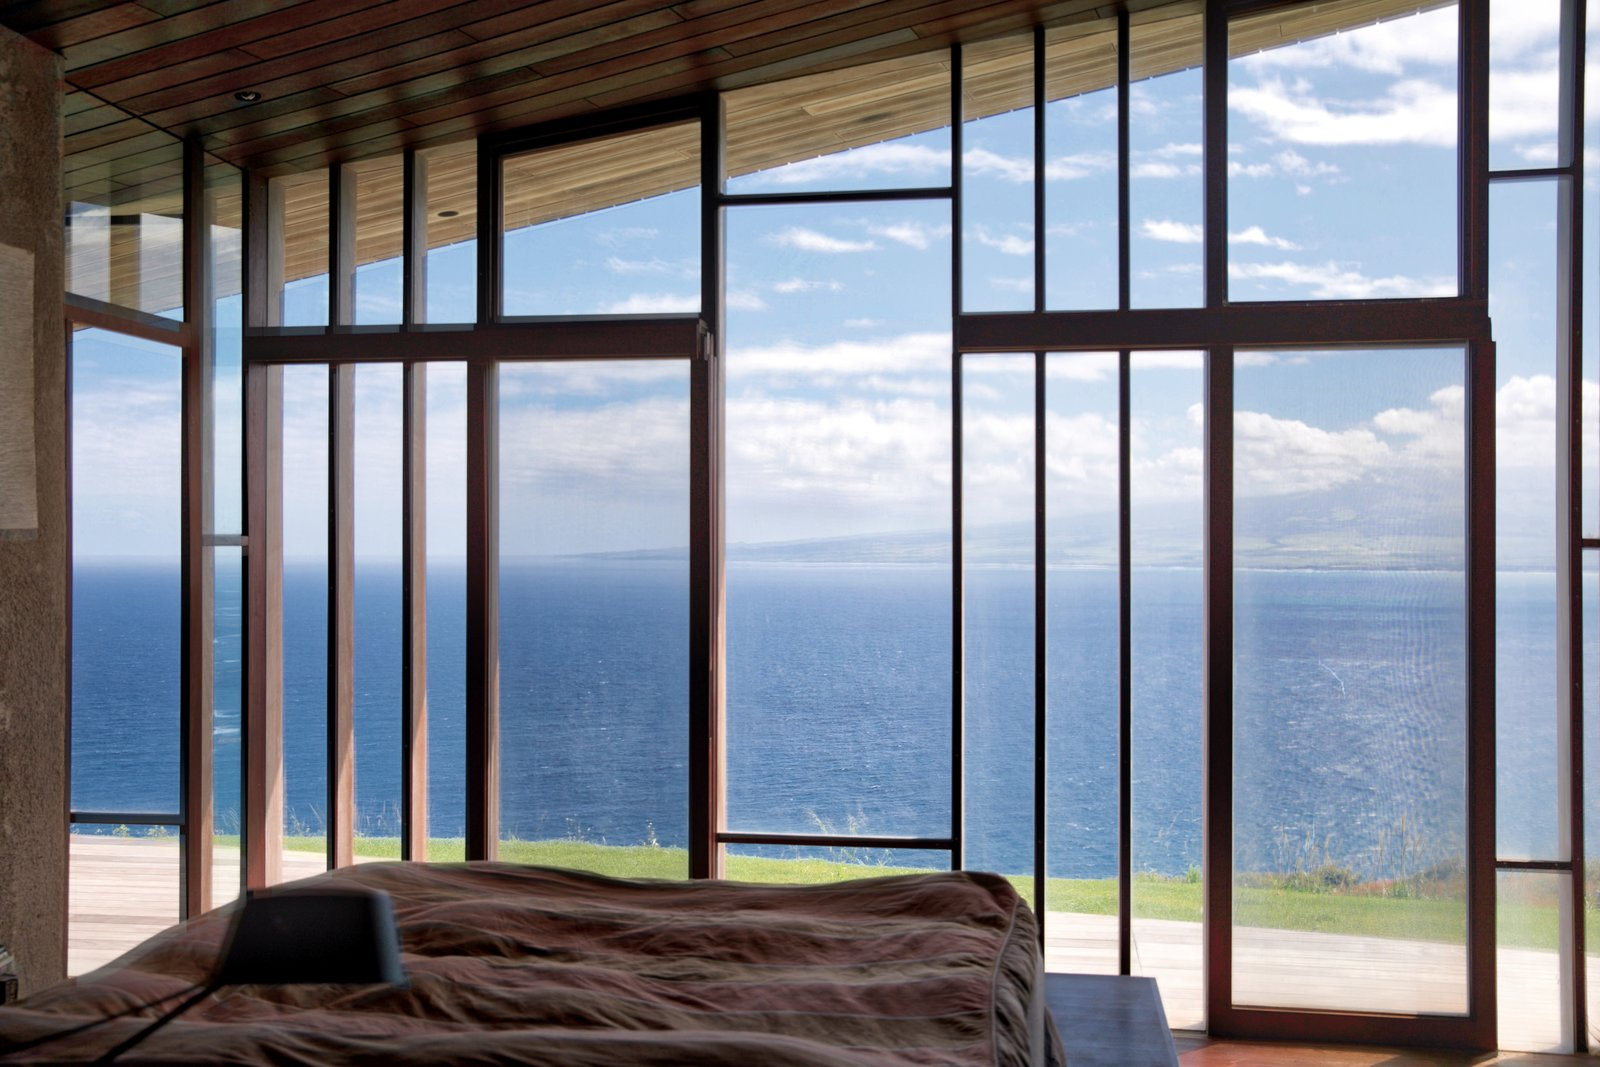 Bedroom, Dark Hardwood Floor, and Bed  The Clifftop House by Modern on Maui - Liam Ball